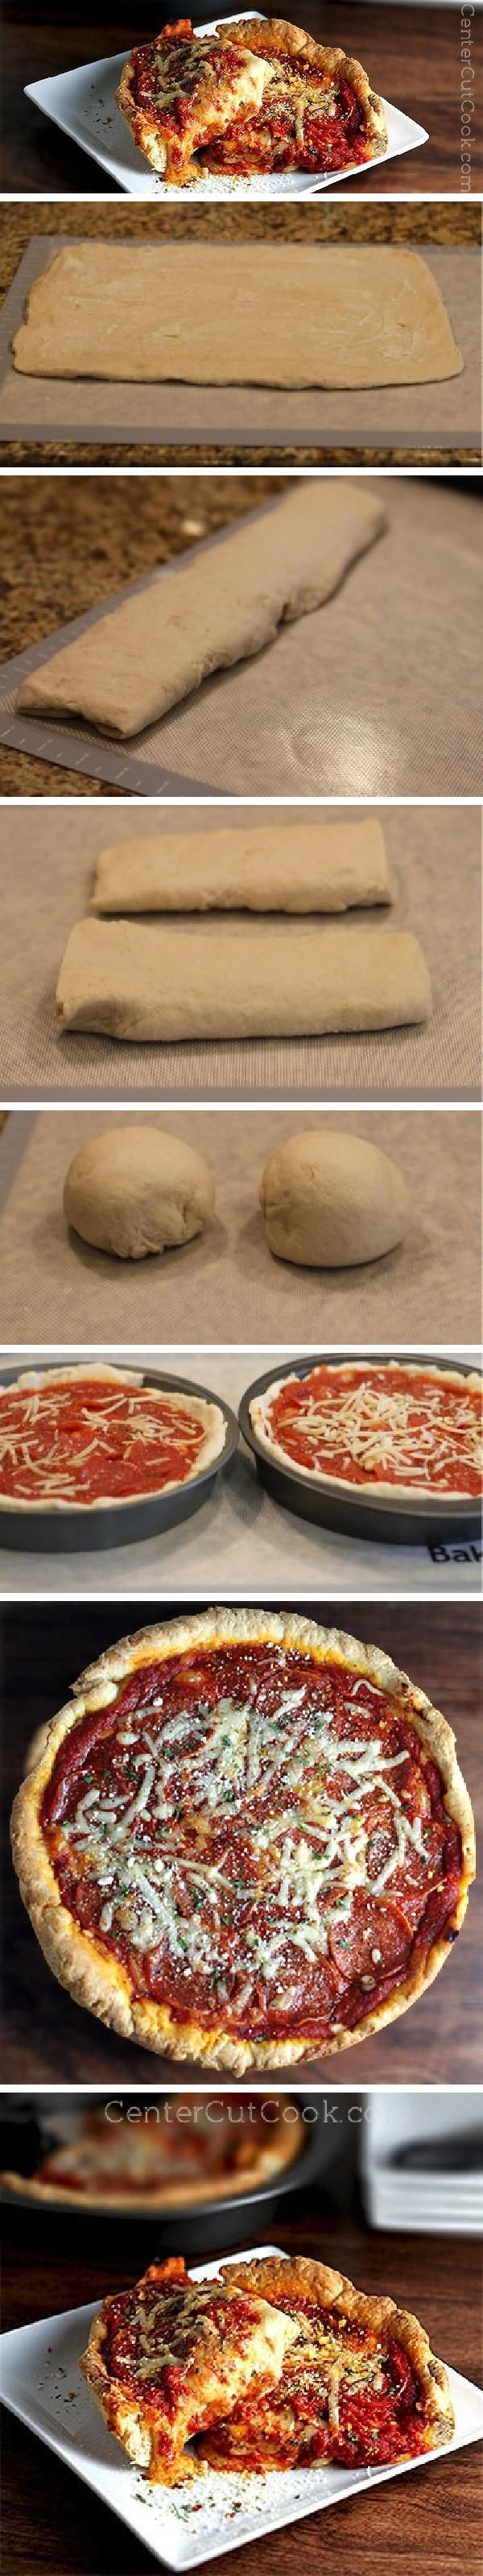 CHICAGO STYLE DEEP DISH PIZZA at home? Who knew? A step-by-step guide on HOW to MAKE this ooey gooey pizza at home!